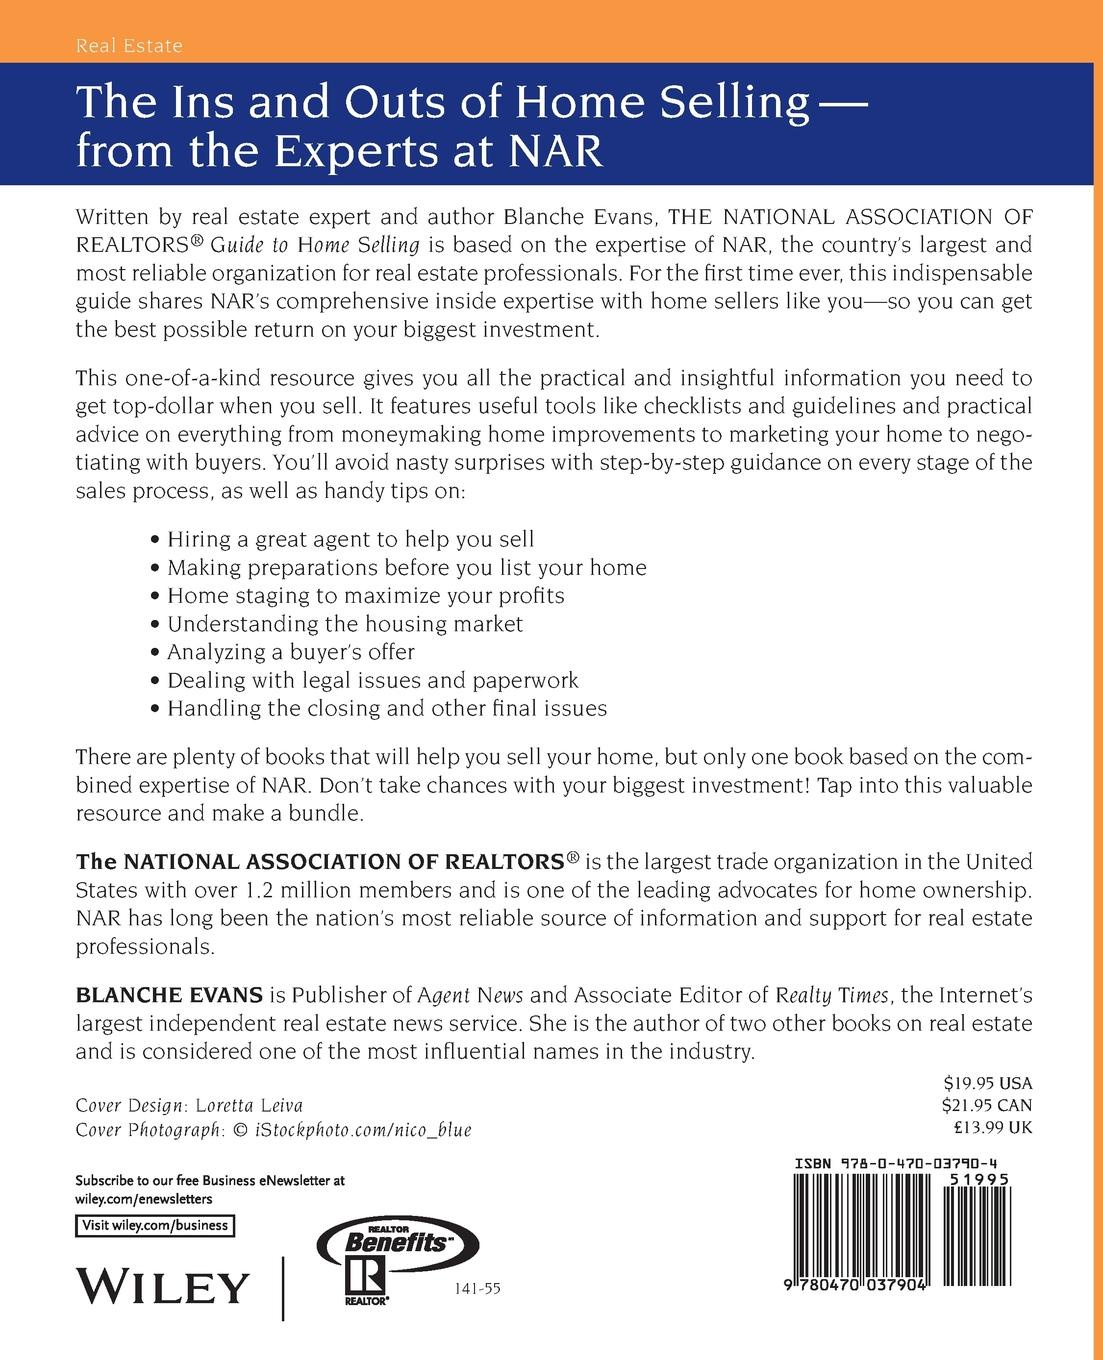 NAR Guide to Home Selling